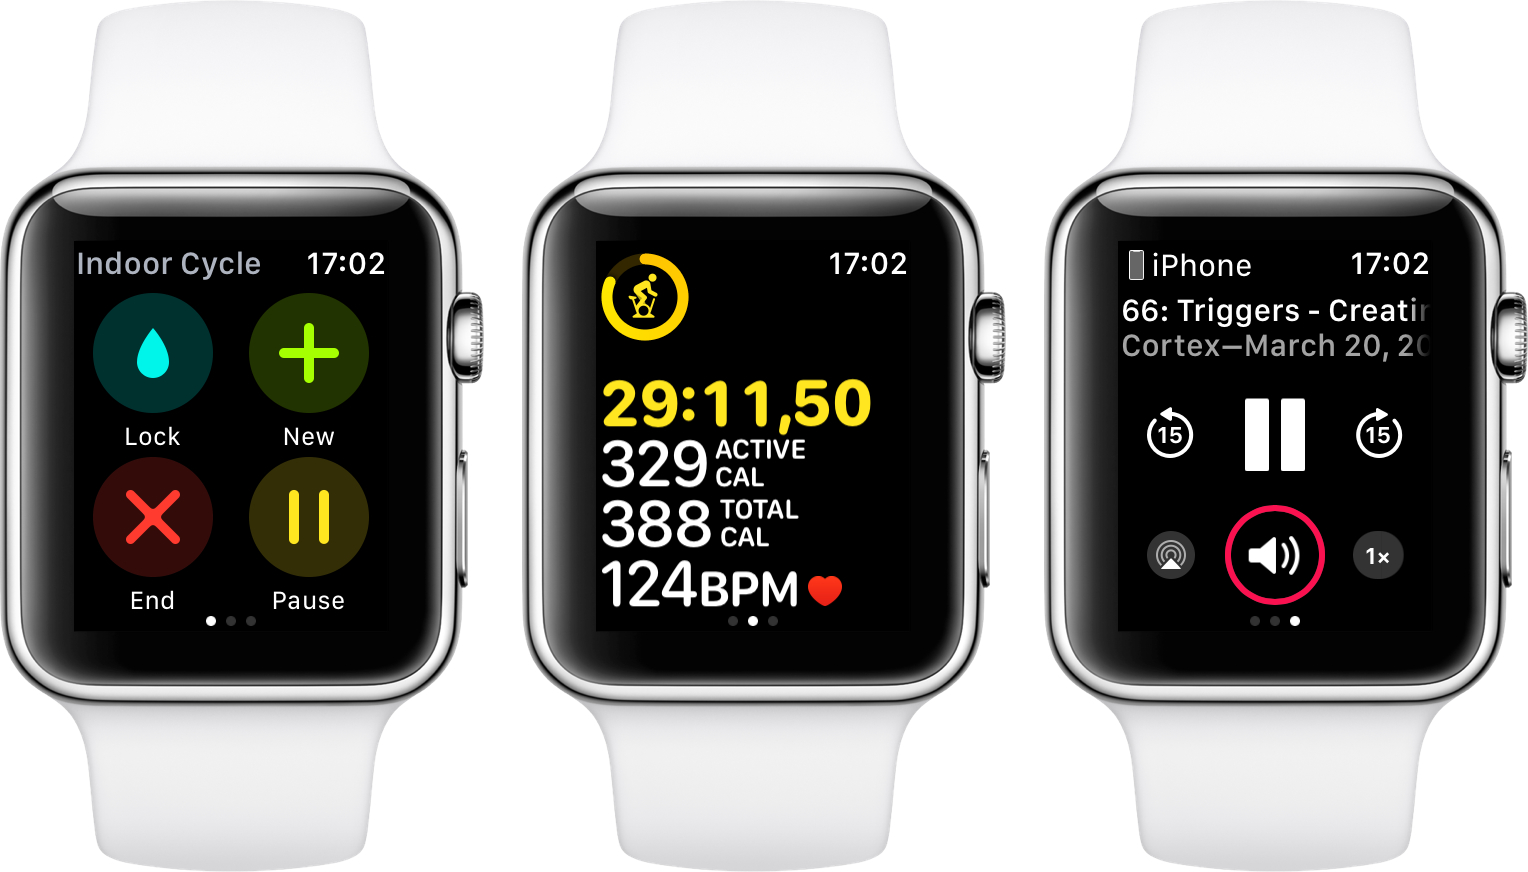 Apple's Workout app in watchOS 4.